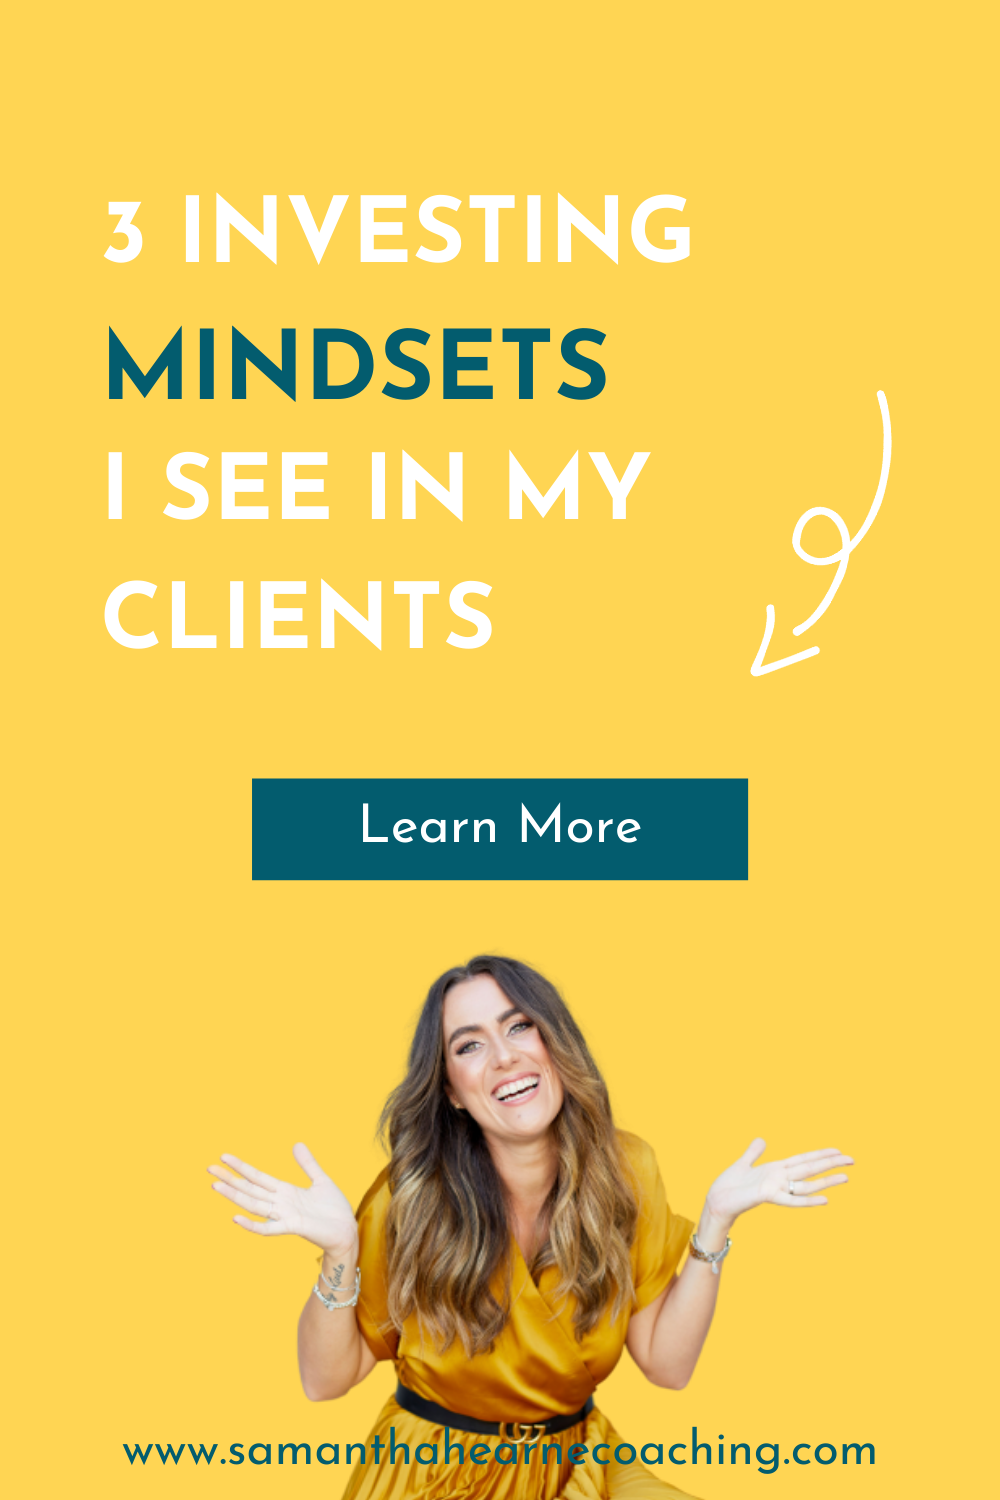 picture of Sam with text: 3 investing mindsets i see in my clients